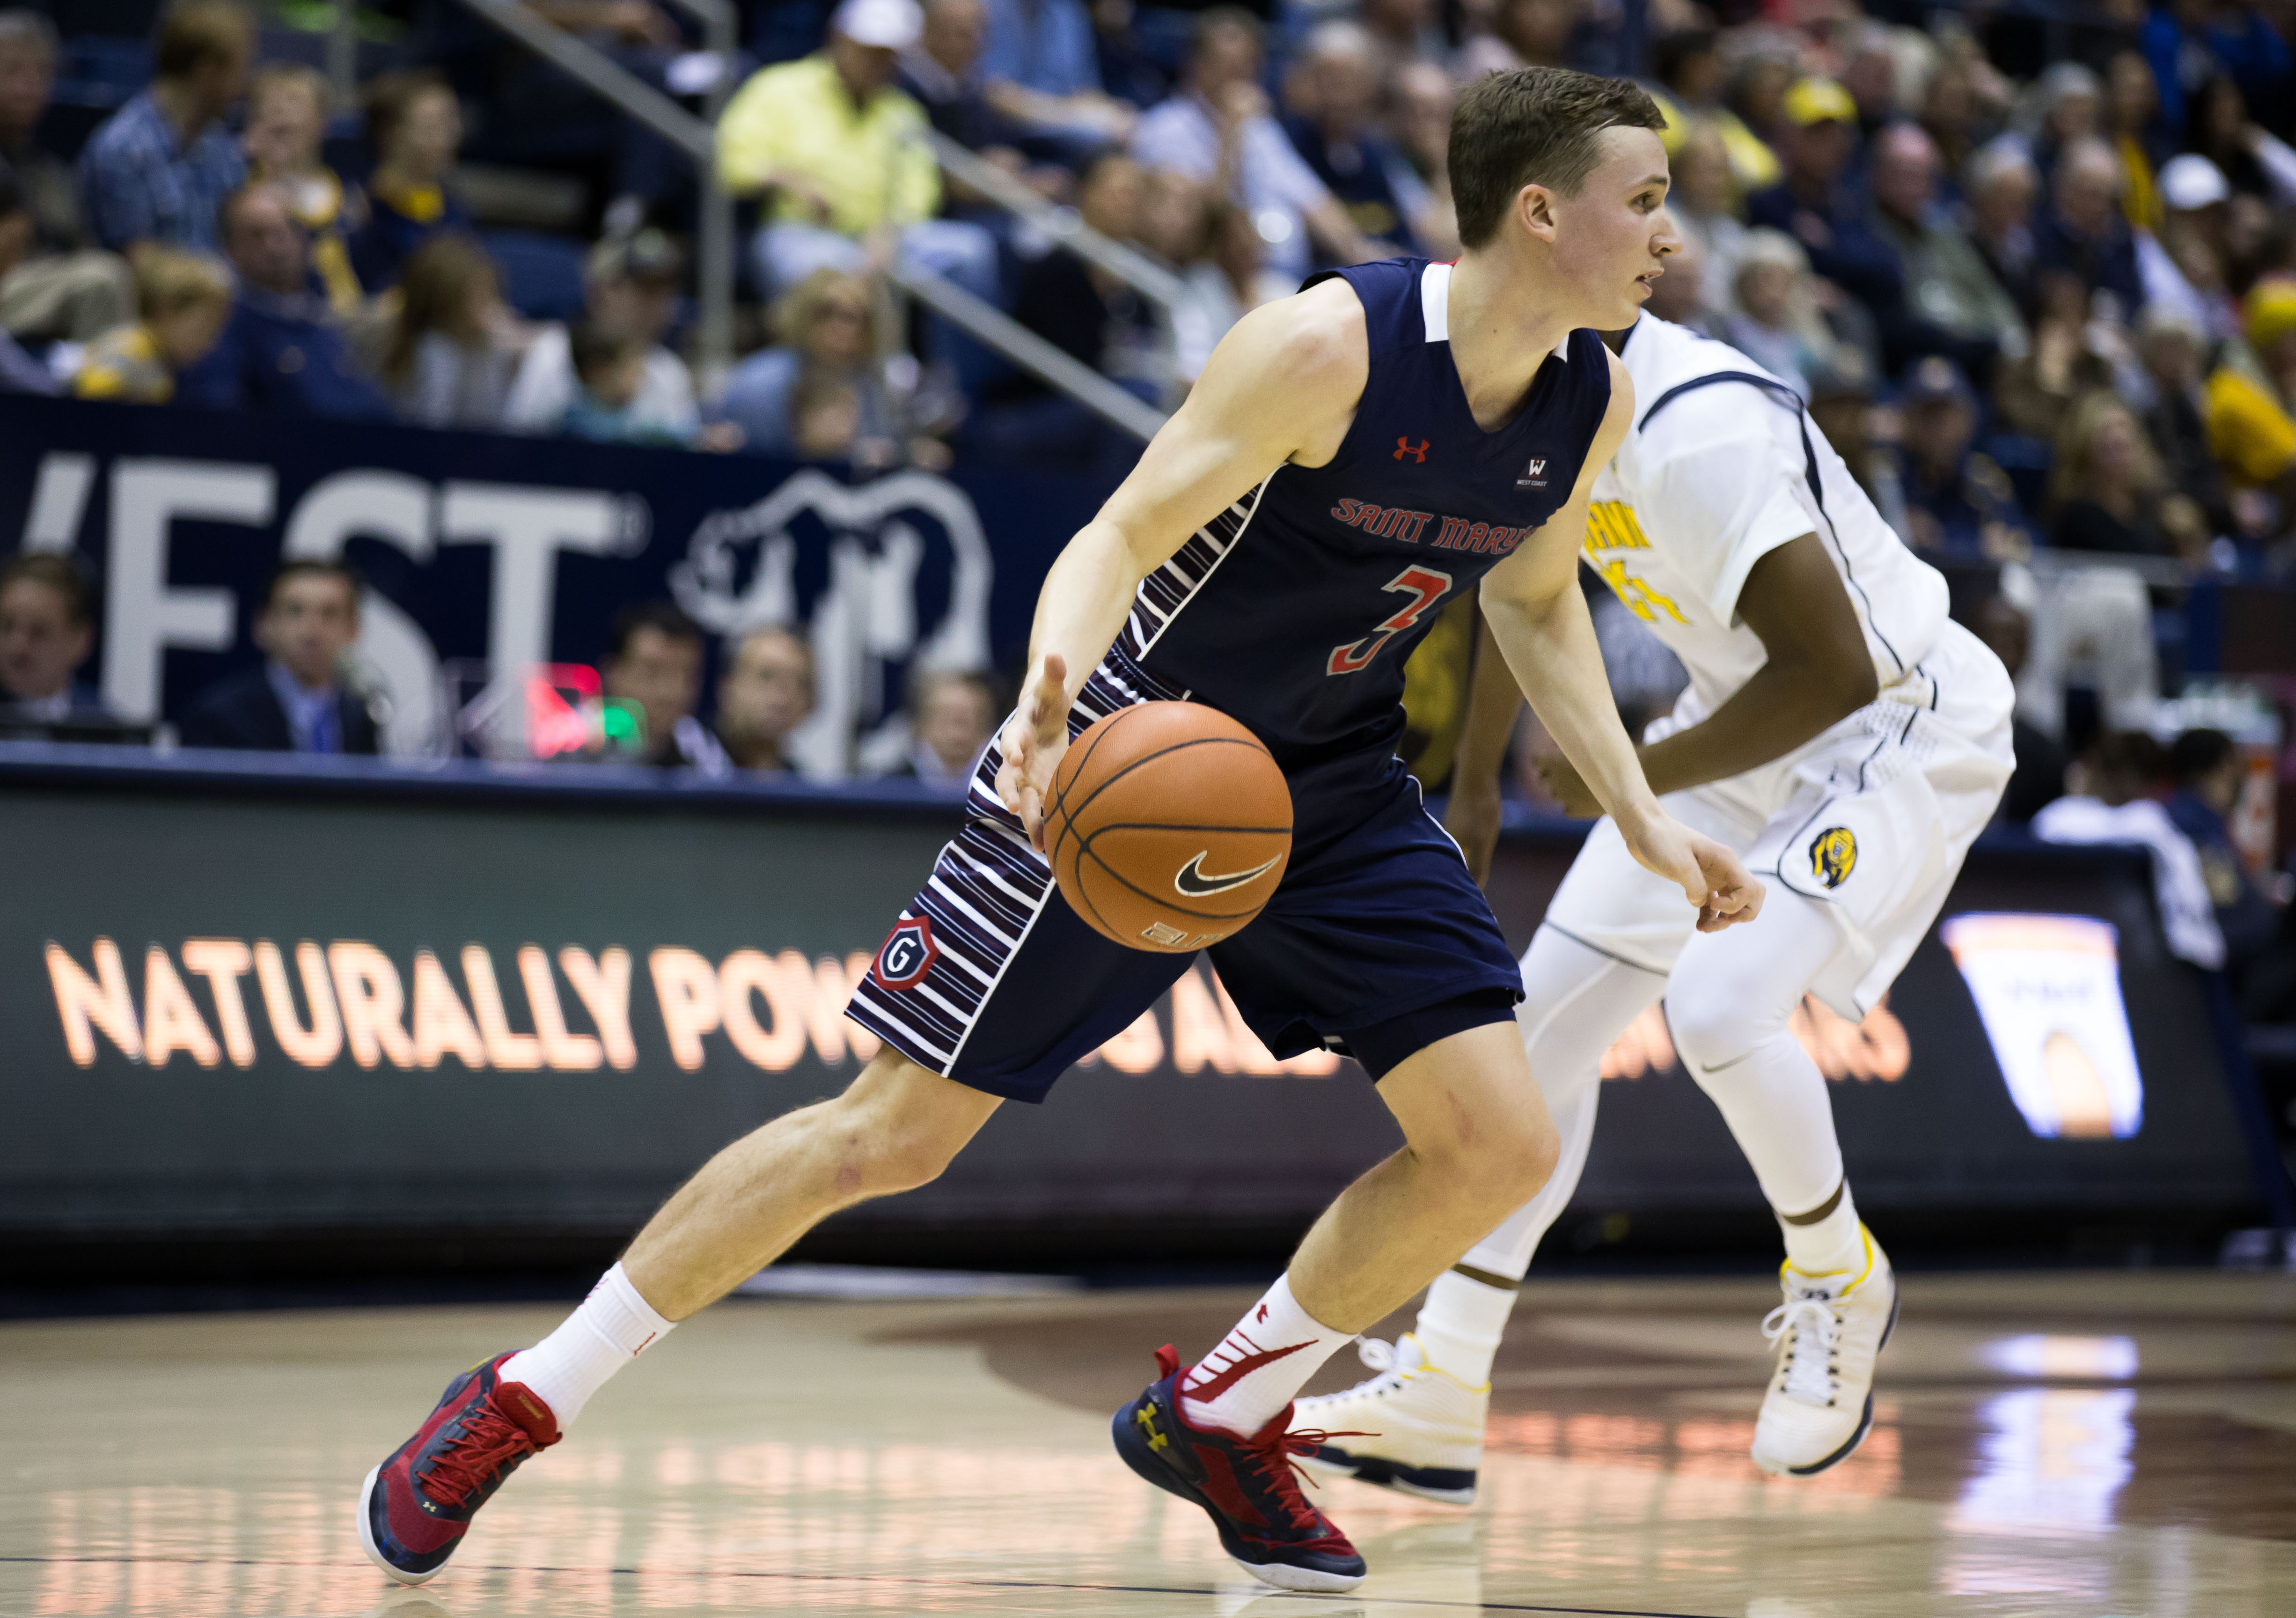 Emmett Naar looks to lead the Gaels past the Cougars at home.